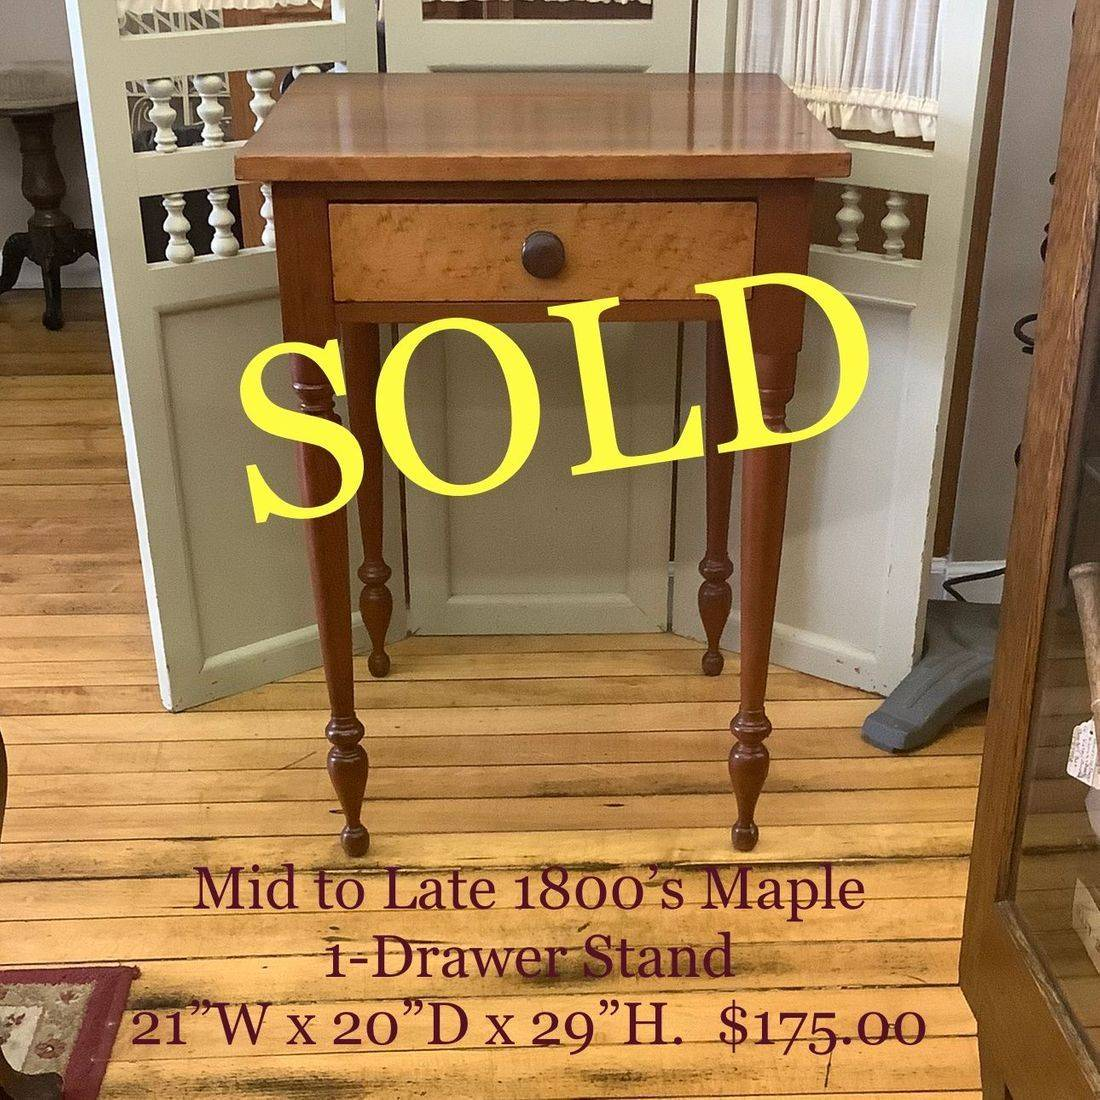 Mid to Late 1800's 1-Drawer Stand   $175.00